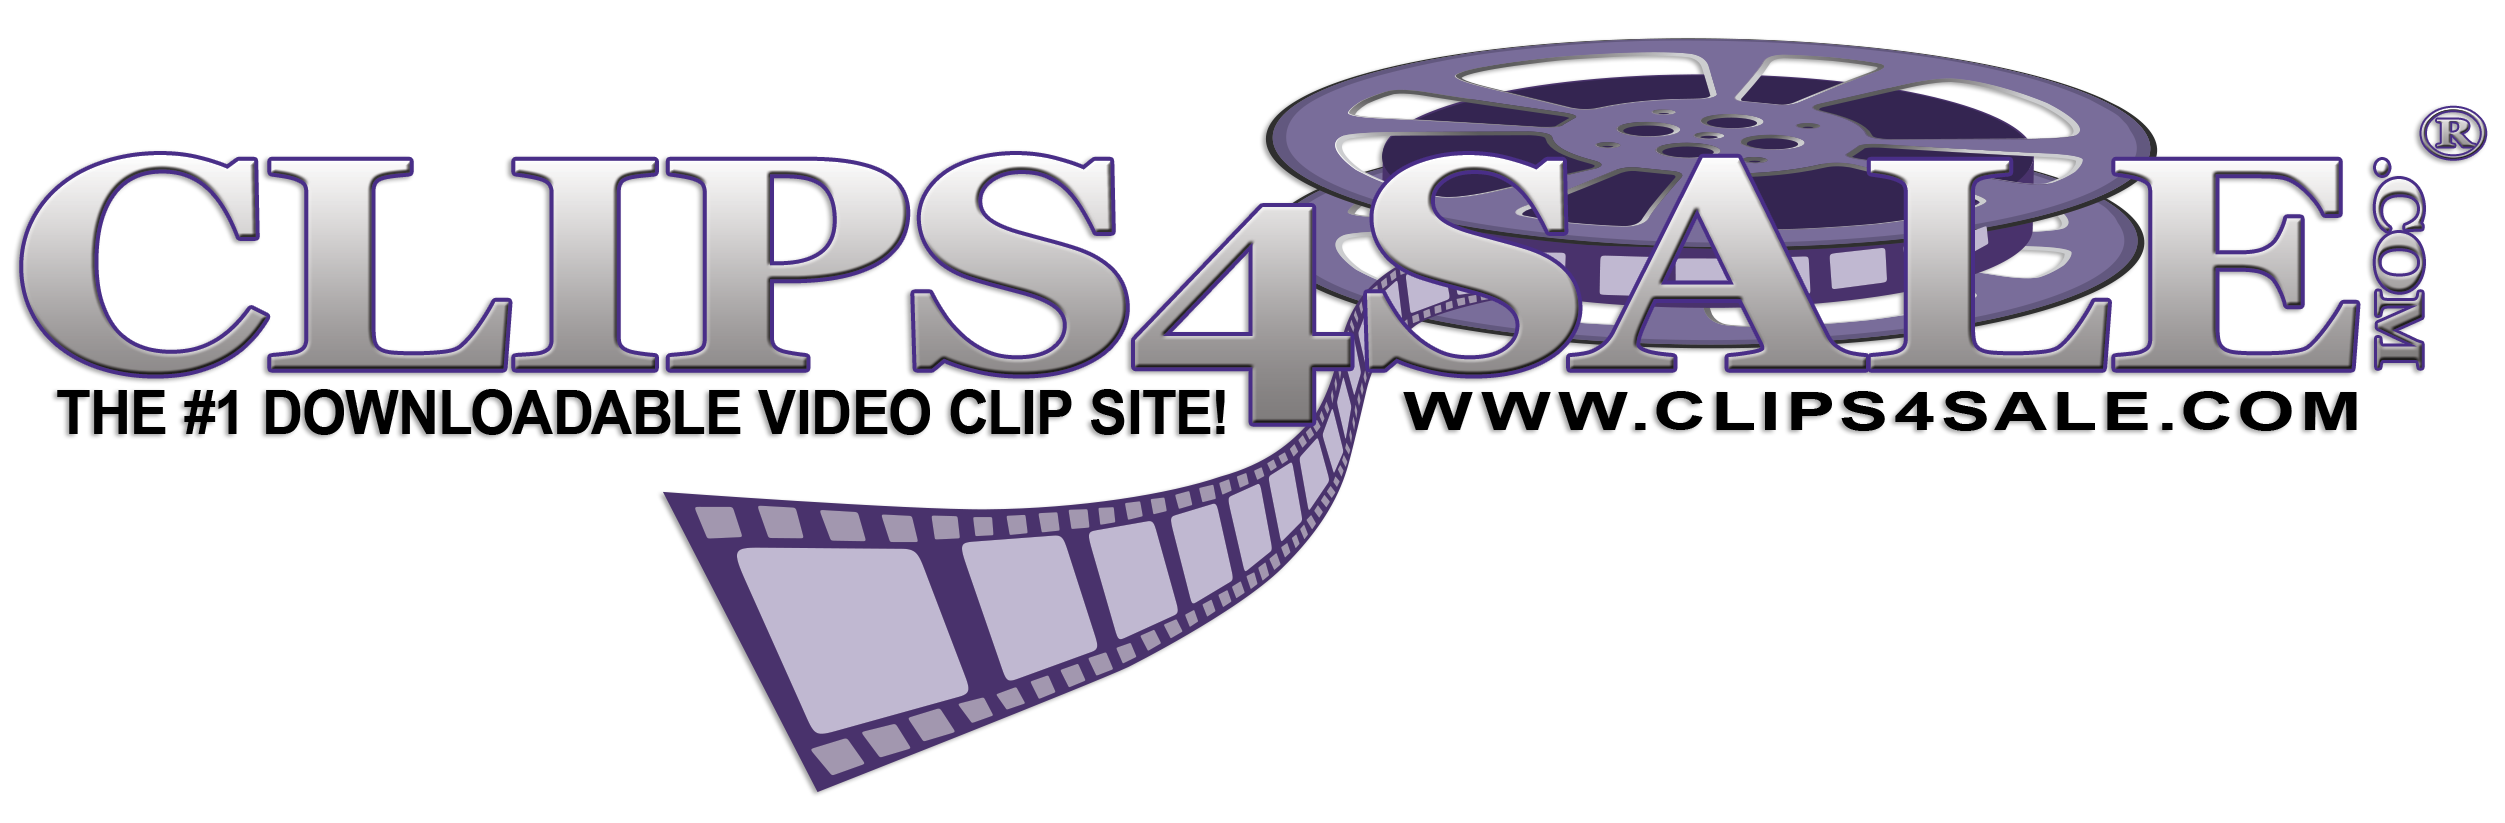 clips4sale_reel_logo.png->description